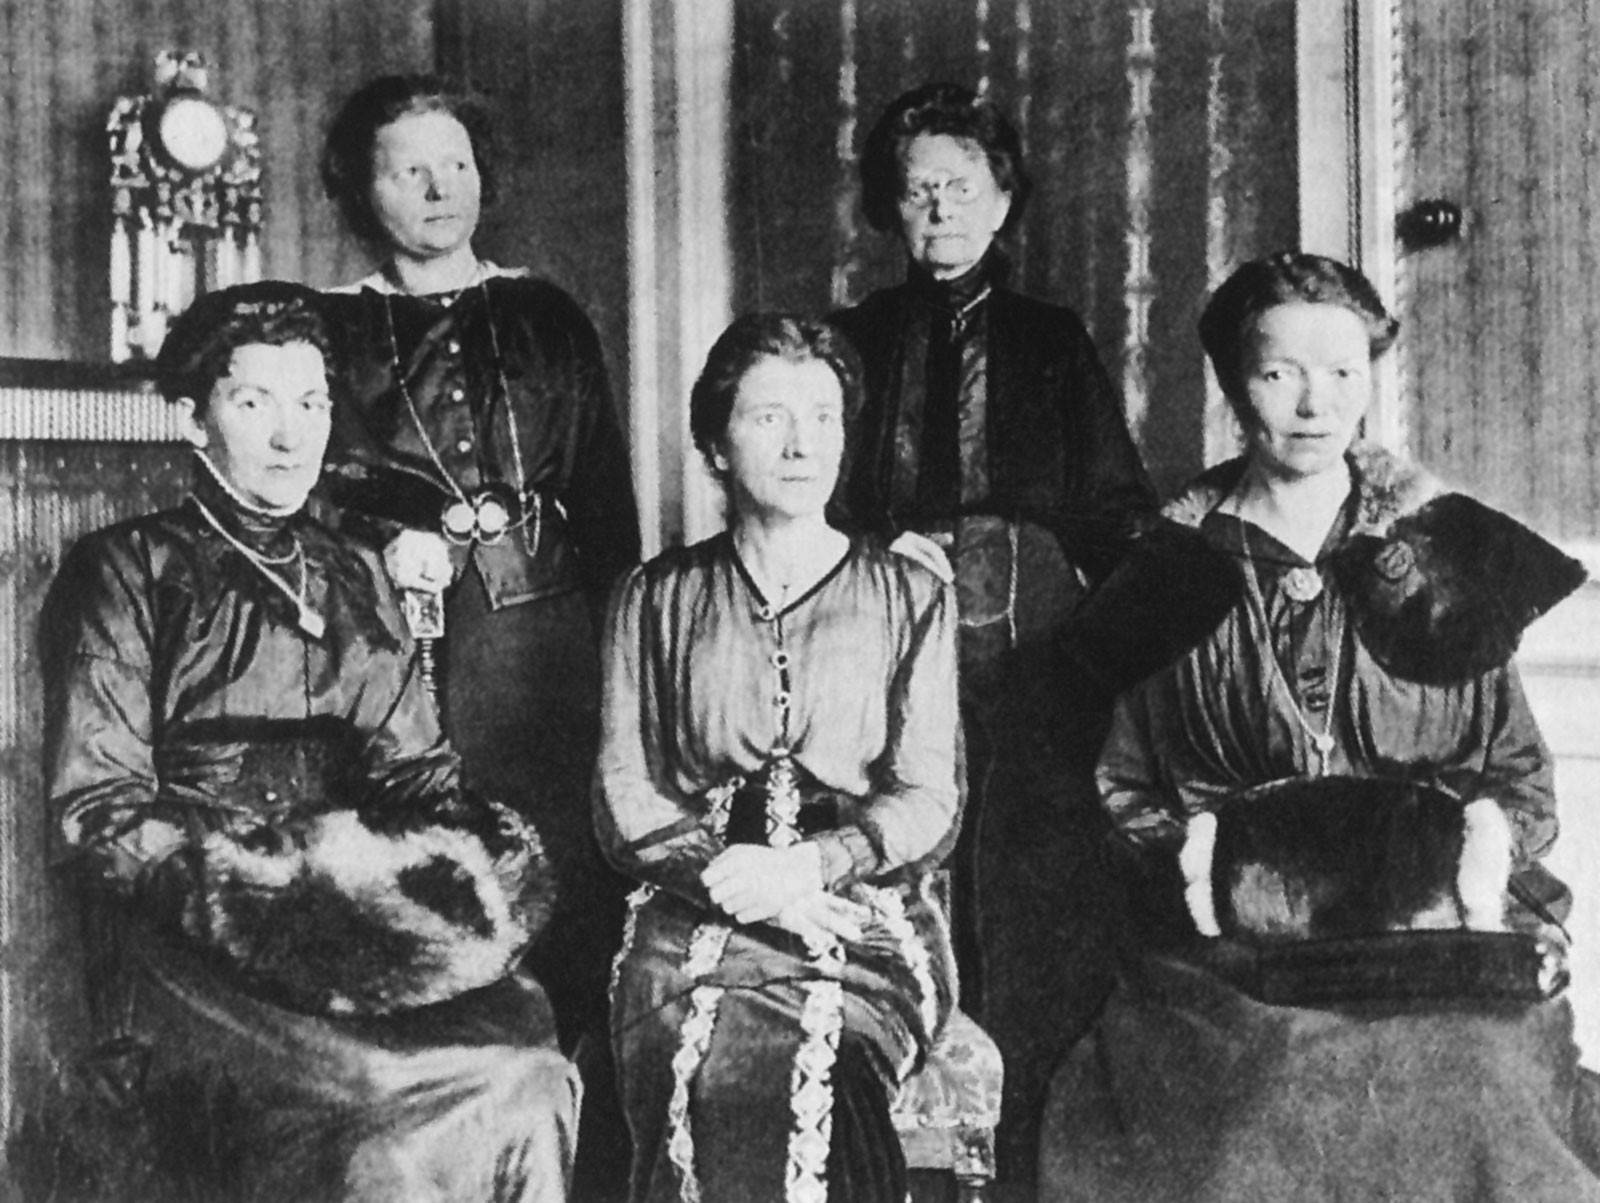 Delegates of the Deutsche Demokratische Partei (DDP, German Democratic Party), founded by Friedrich Naumann, shown at the National Assembly of the Weimar Republic in 1919: Elisabeth Brönner, Marie Baum, Gertrud Bäumer, Katharina Klose, and Elise Ekke. © Archiv und Museum der Universität Heidelberg.